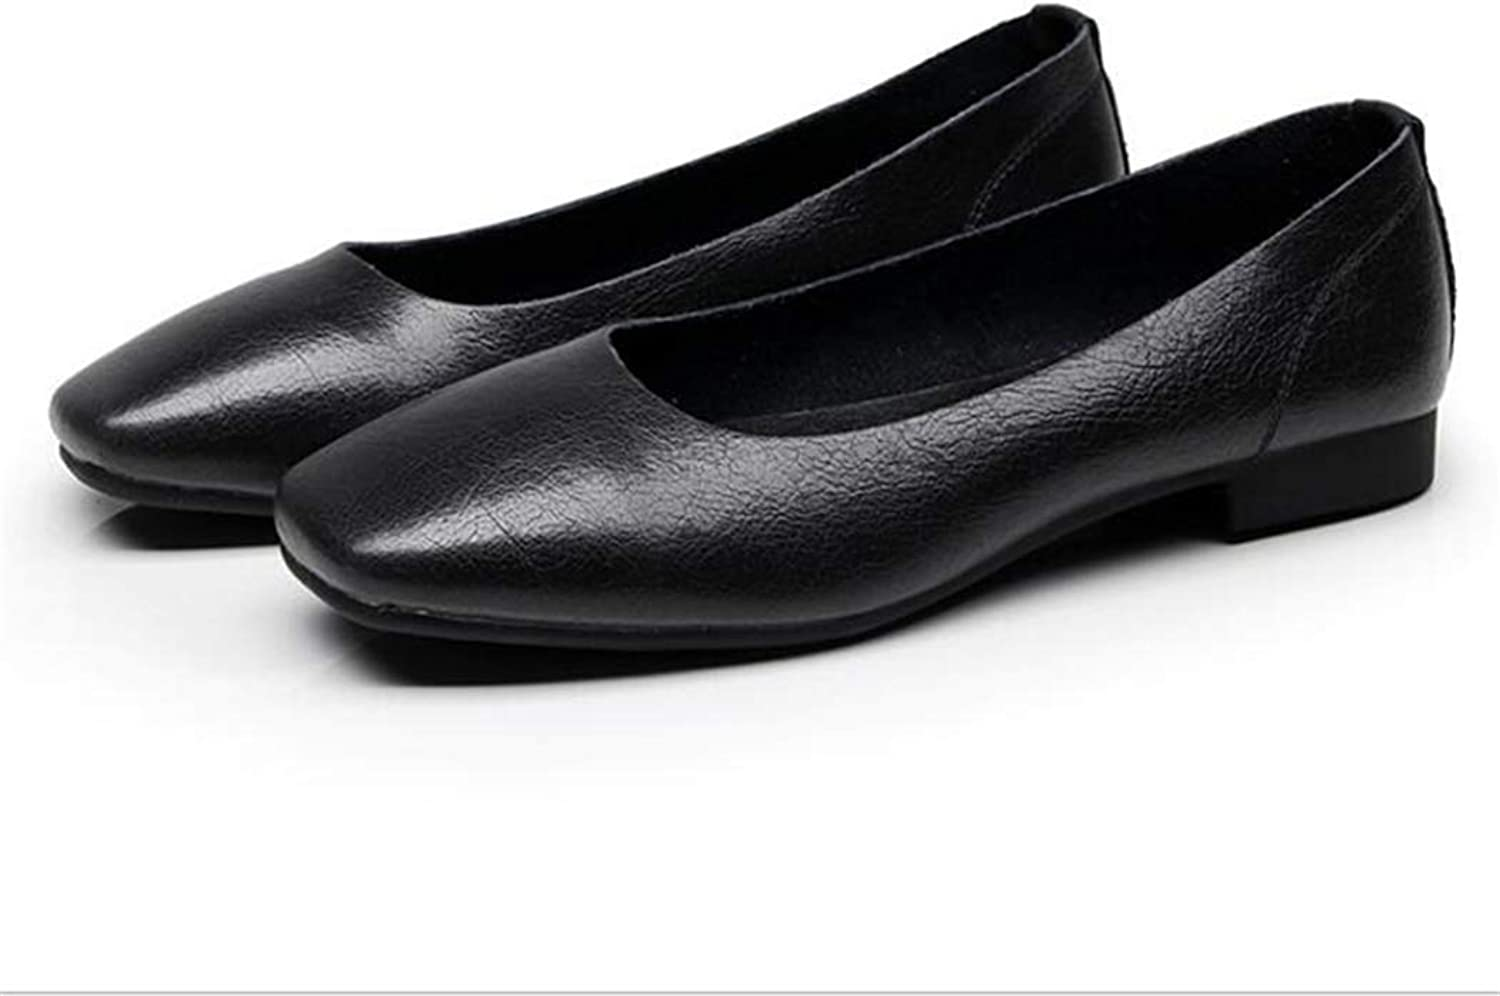 Flyingdogs Comfort Round Toe Leather Ballerina Foldable Ballet Flats Portable Travel Flats Loafer shoes